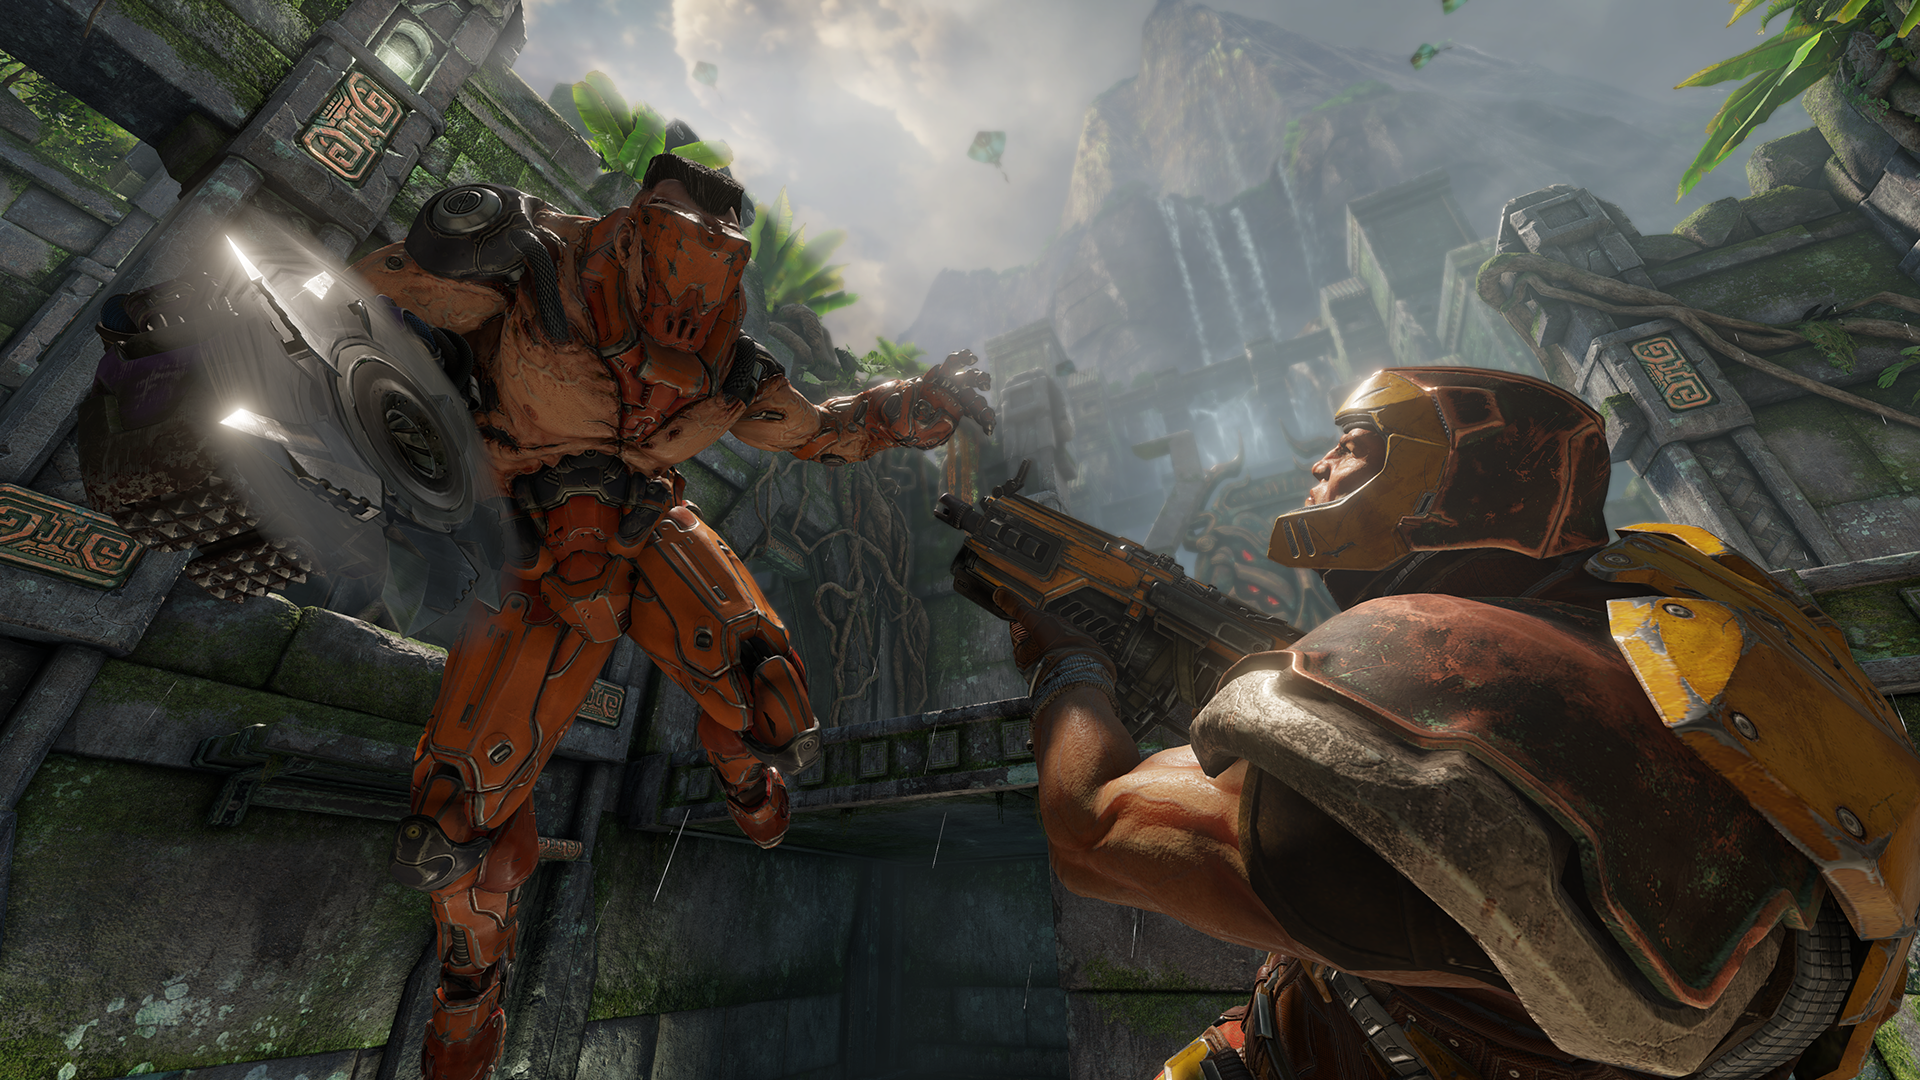 Action, Esports, FPS, Multiplayer, News, Online Game, Overview, Steam Keys, Quake Champions, Quake, id Software, Quakecon 2